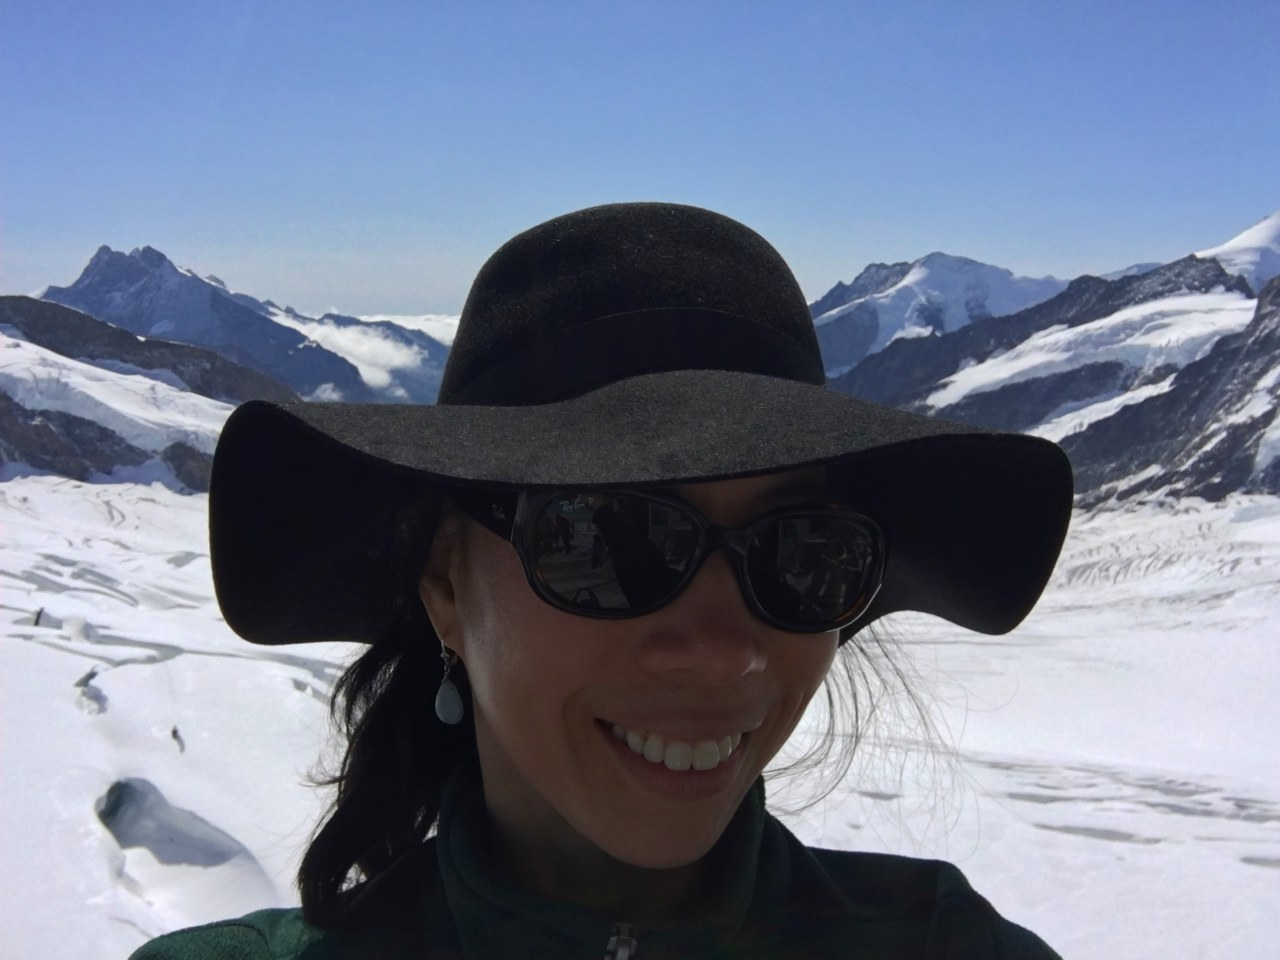 Jungfraujoch Tips: Bring Sunglasses and a Hat